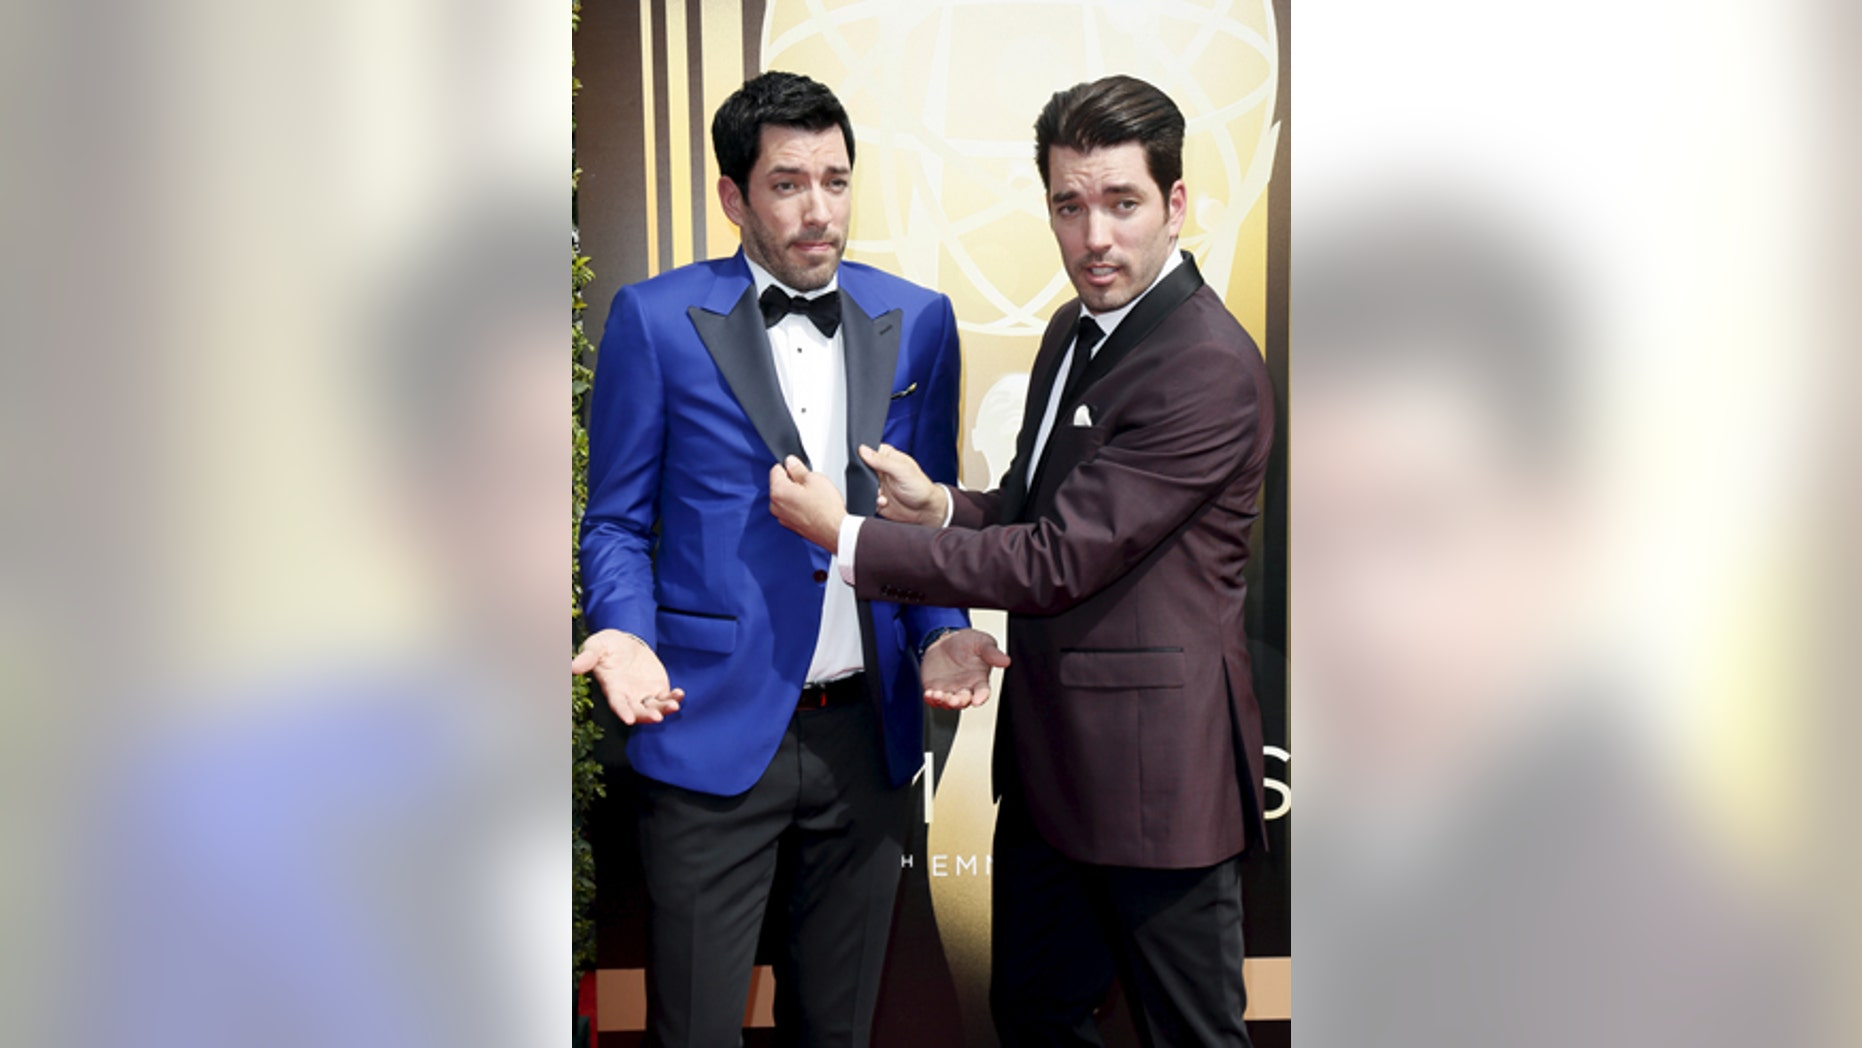 Television personalities Drew Scott (L) and twin brother Jonathan Scott pose at the 2015 Creative Arts Emmy Awards in Los Angeles, California September 12, 2015.